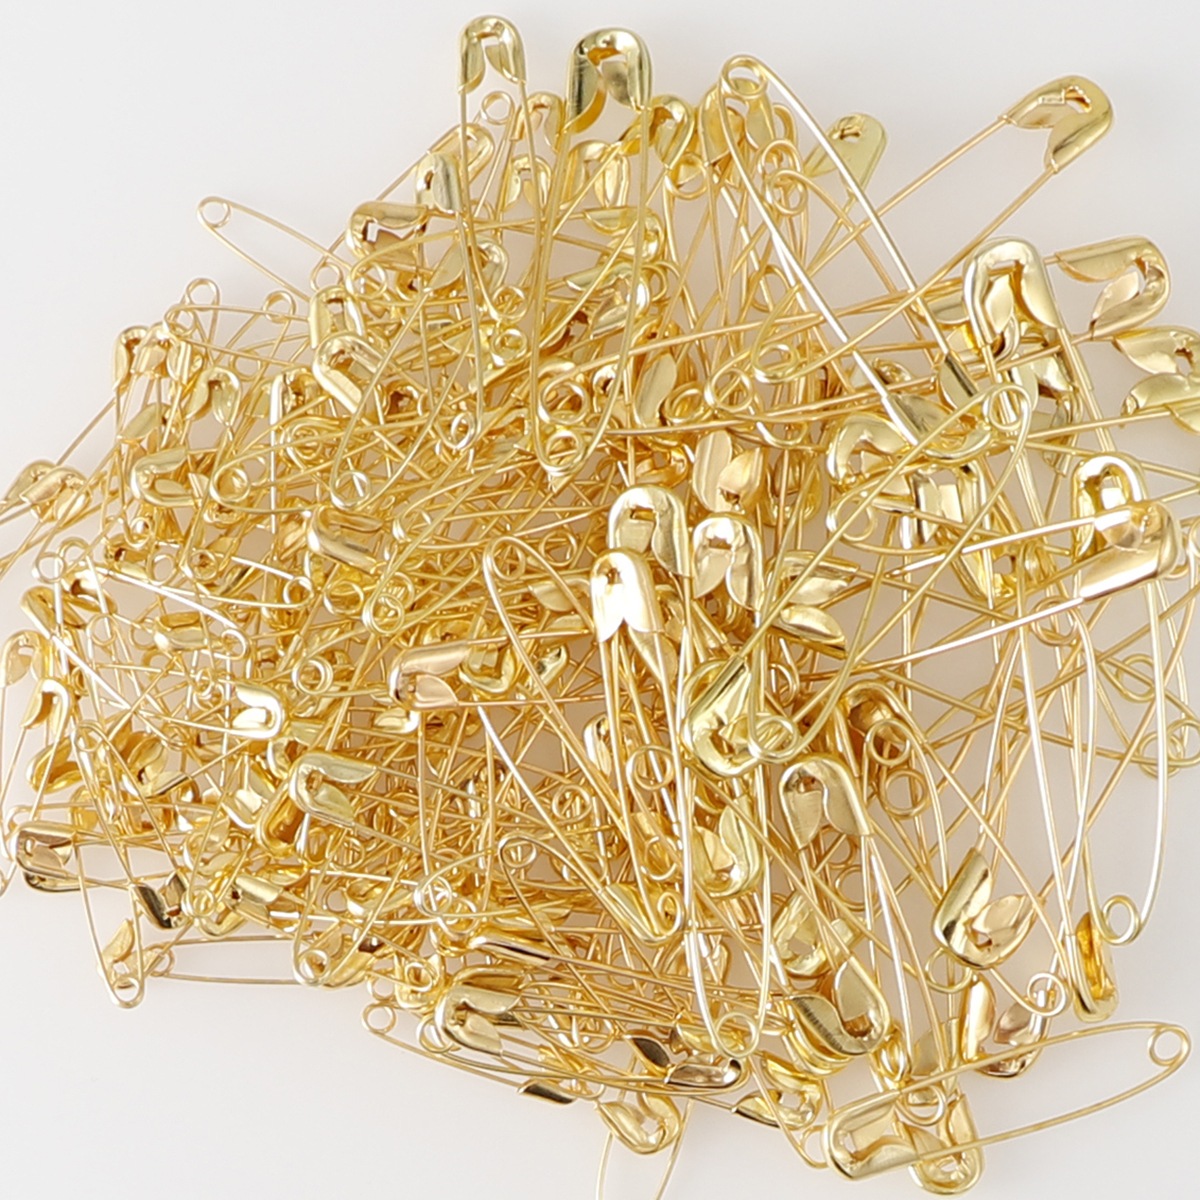 100Pcs Silver/Gold/Black Iron Safety Pins DIY Sewing Tools Accessory Large Safety Pin Small Brooch Apparel Accessories